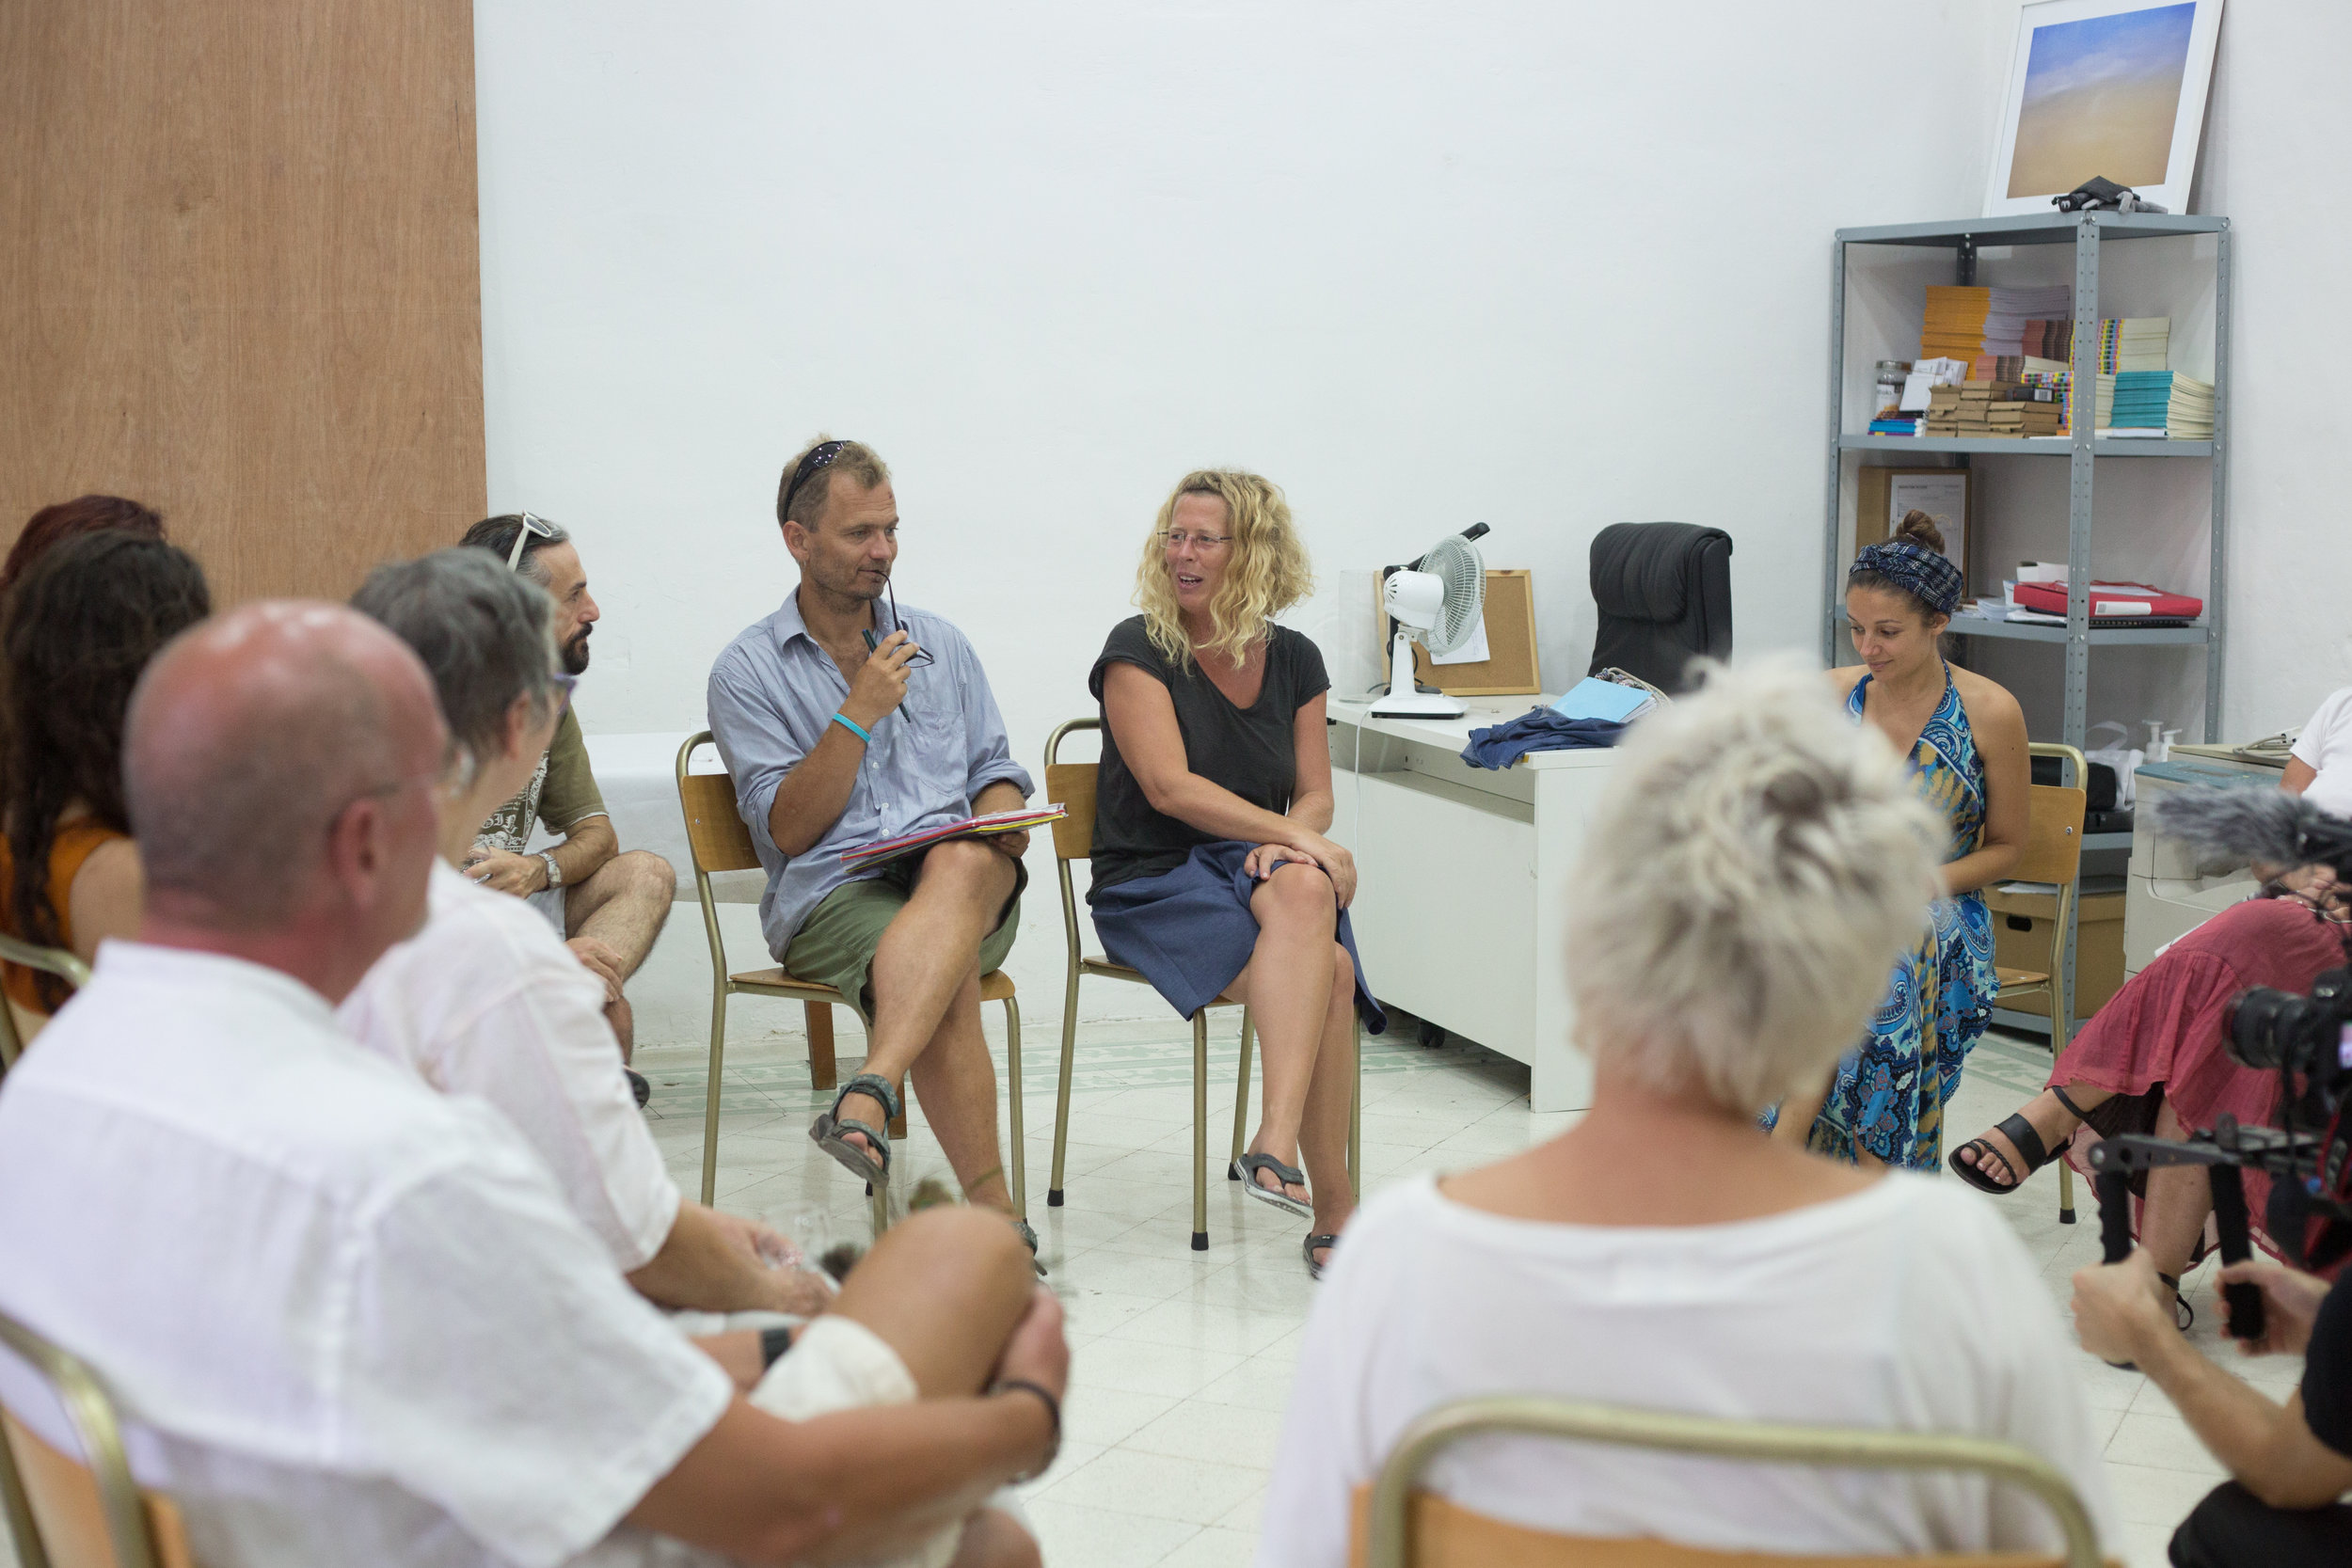 Panel discussion about radical recycling Organised by Time's Up Mediator Greta Muscat Azzopardi from The Amber Spark